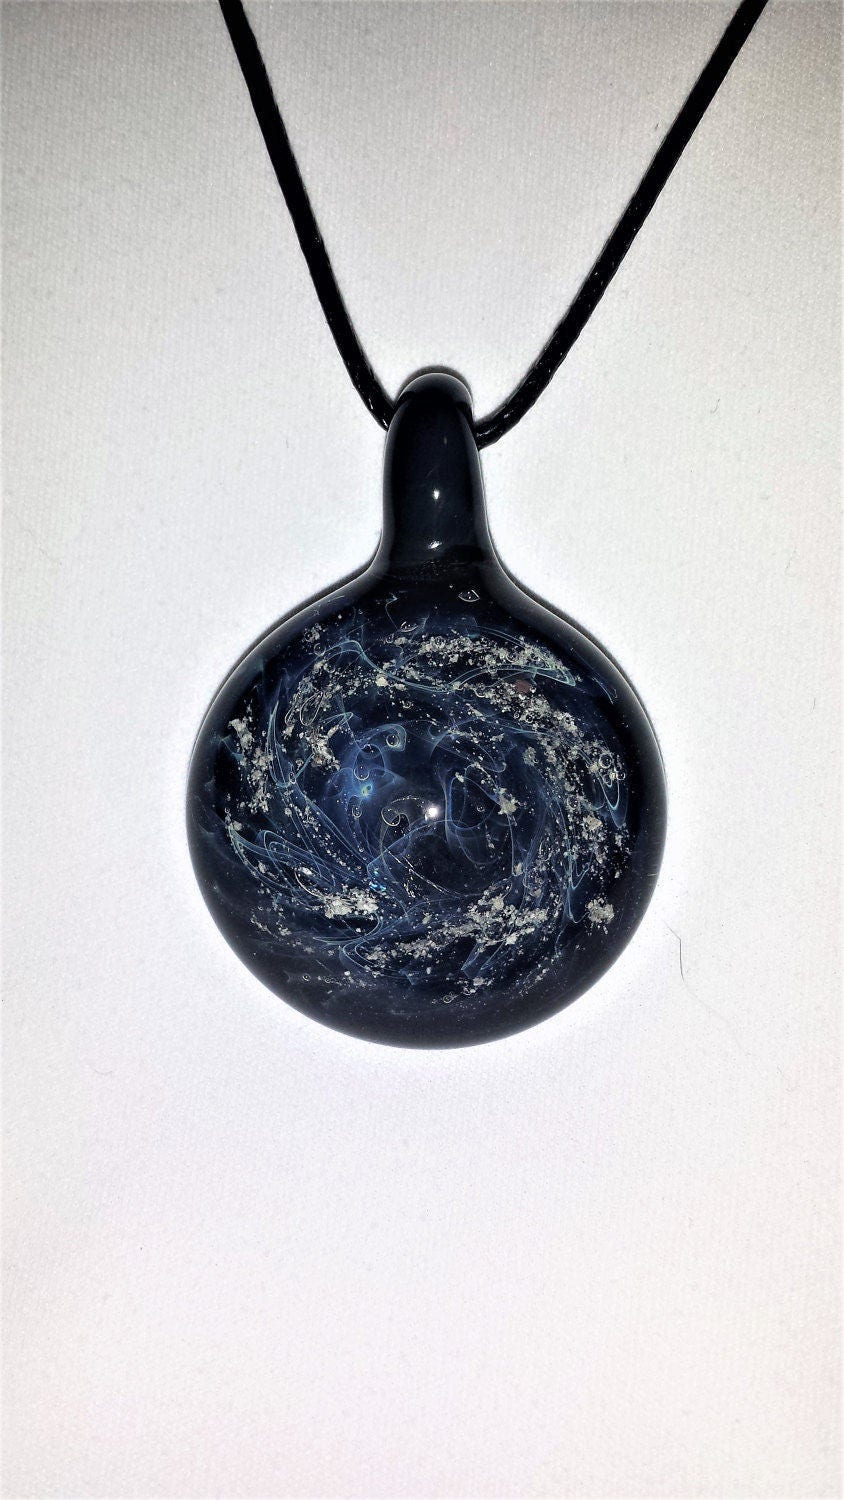 ashes to glass jewelry cremation jewelry blown glass pendant stardust galaxy 6933